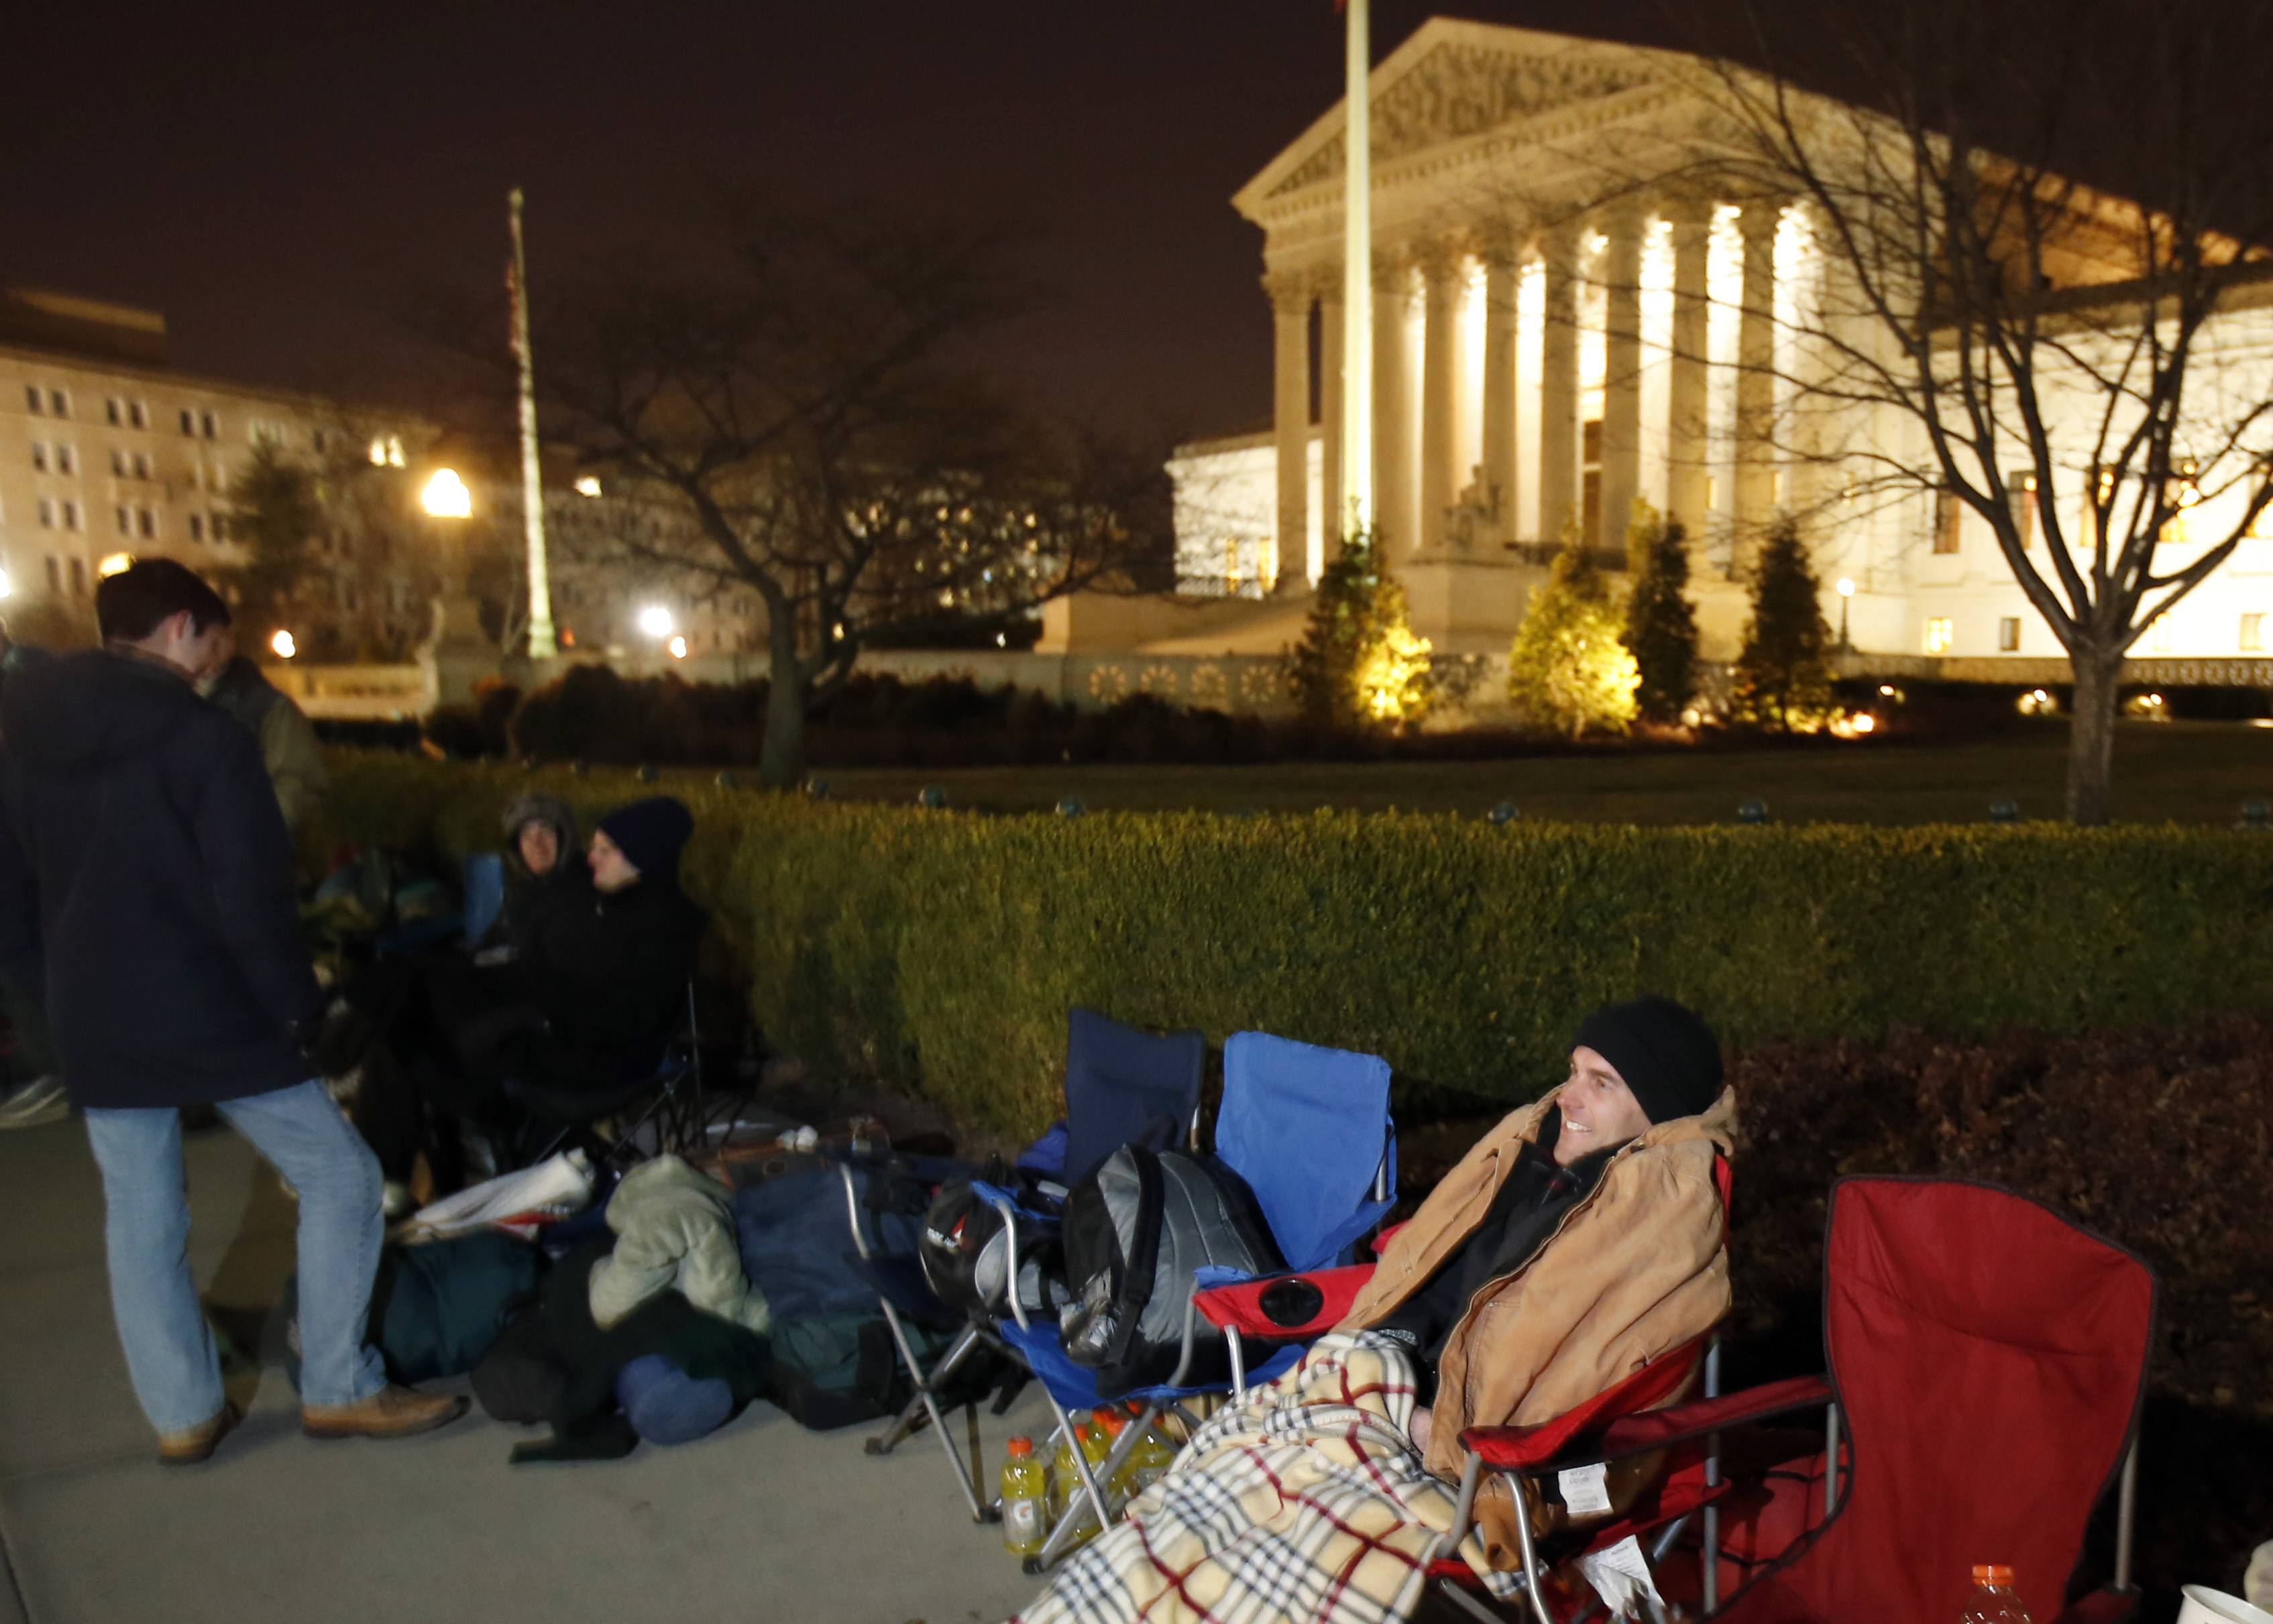 Jerome Weaver waits in line Monday in front of the Supreme Court in Washington. The Supreme Court is weighing whether corporations have religious rights that exempt them from part of the new health care law that requires coverage of birth control for employees at no extra charge.